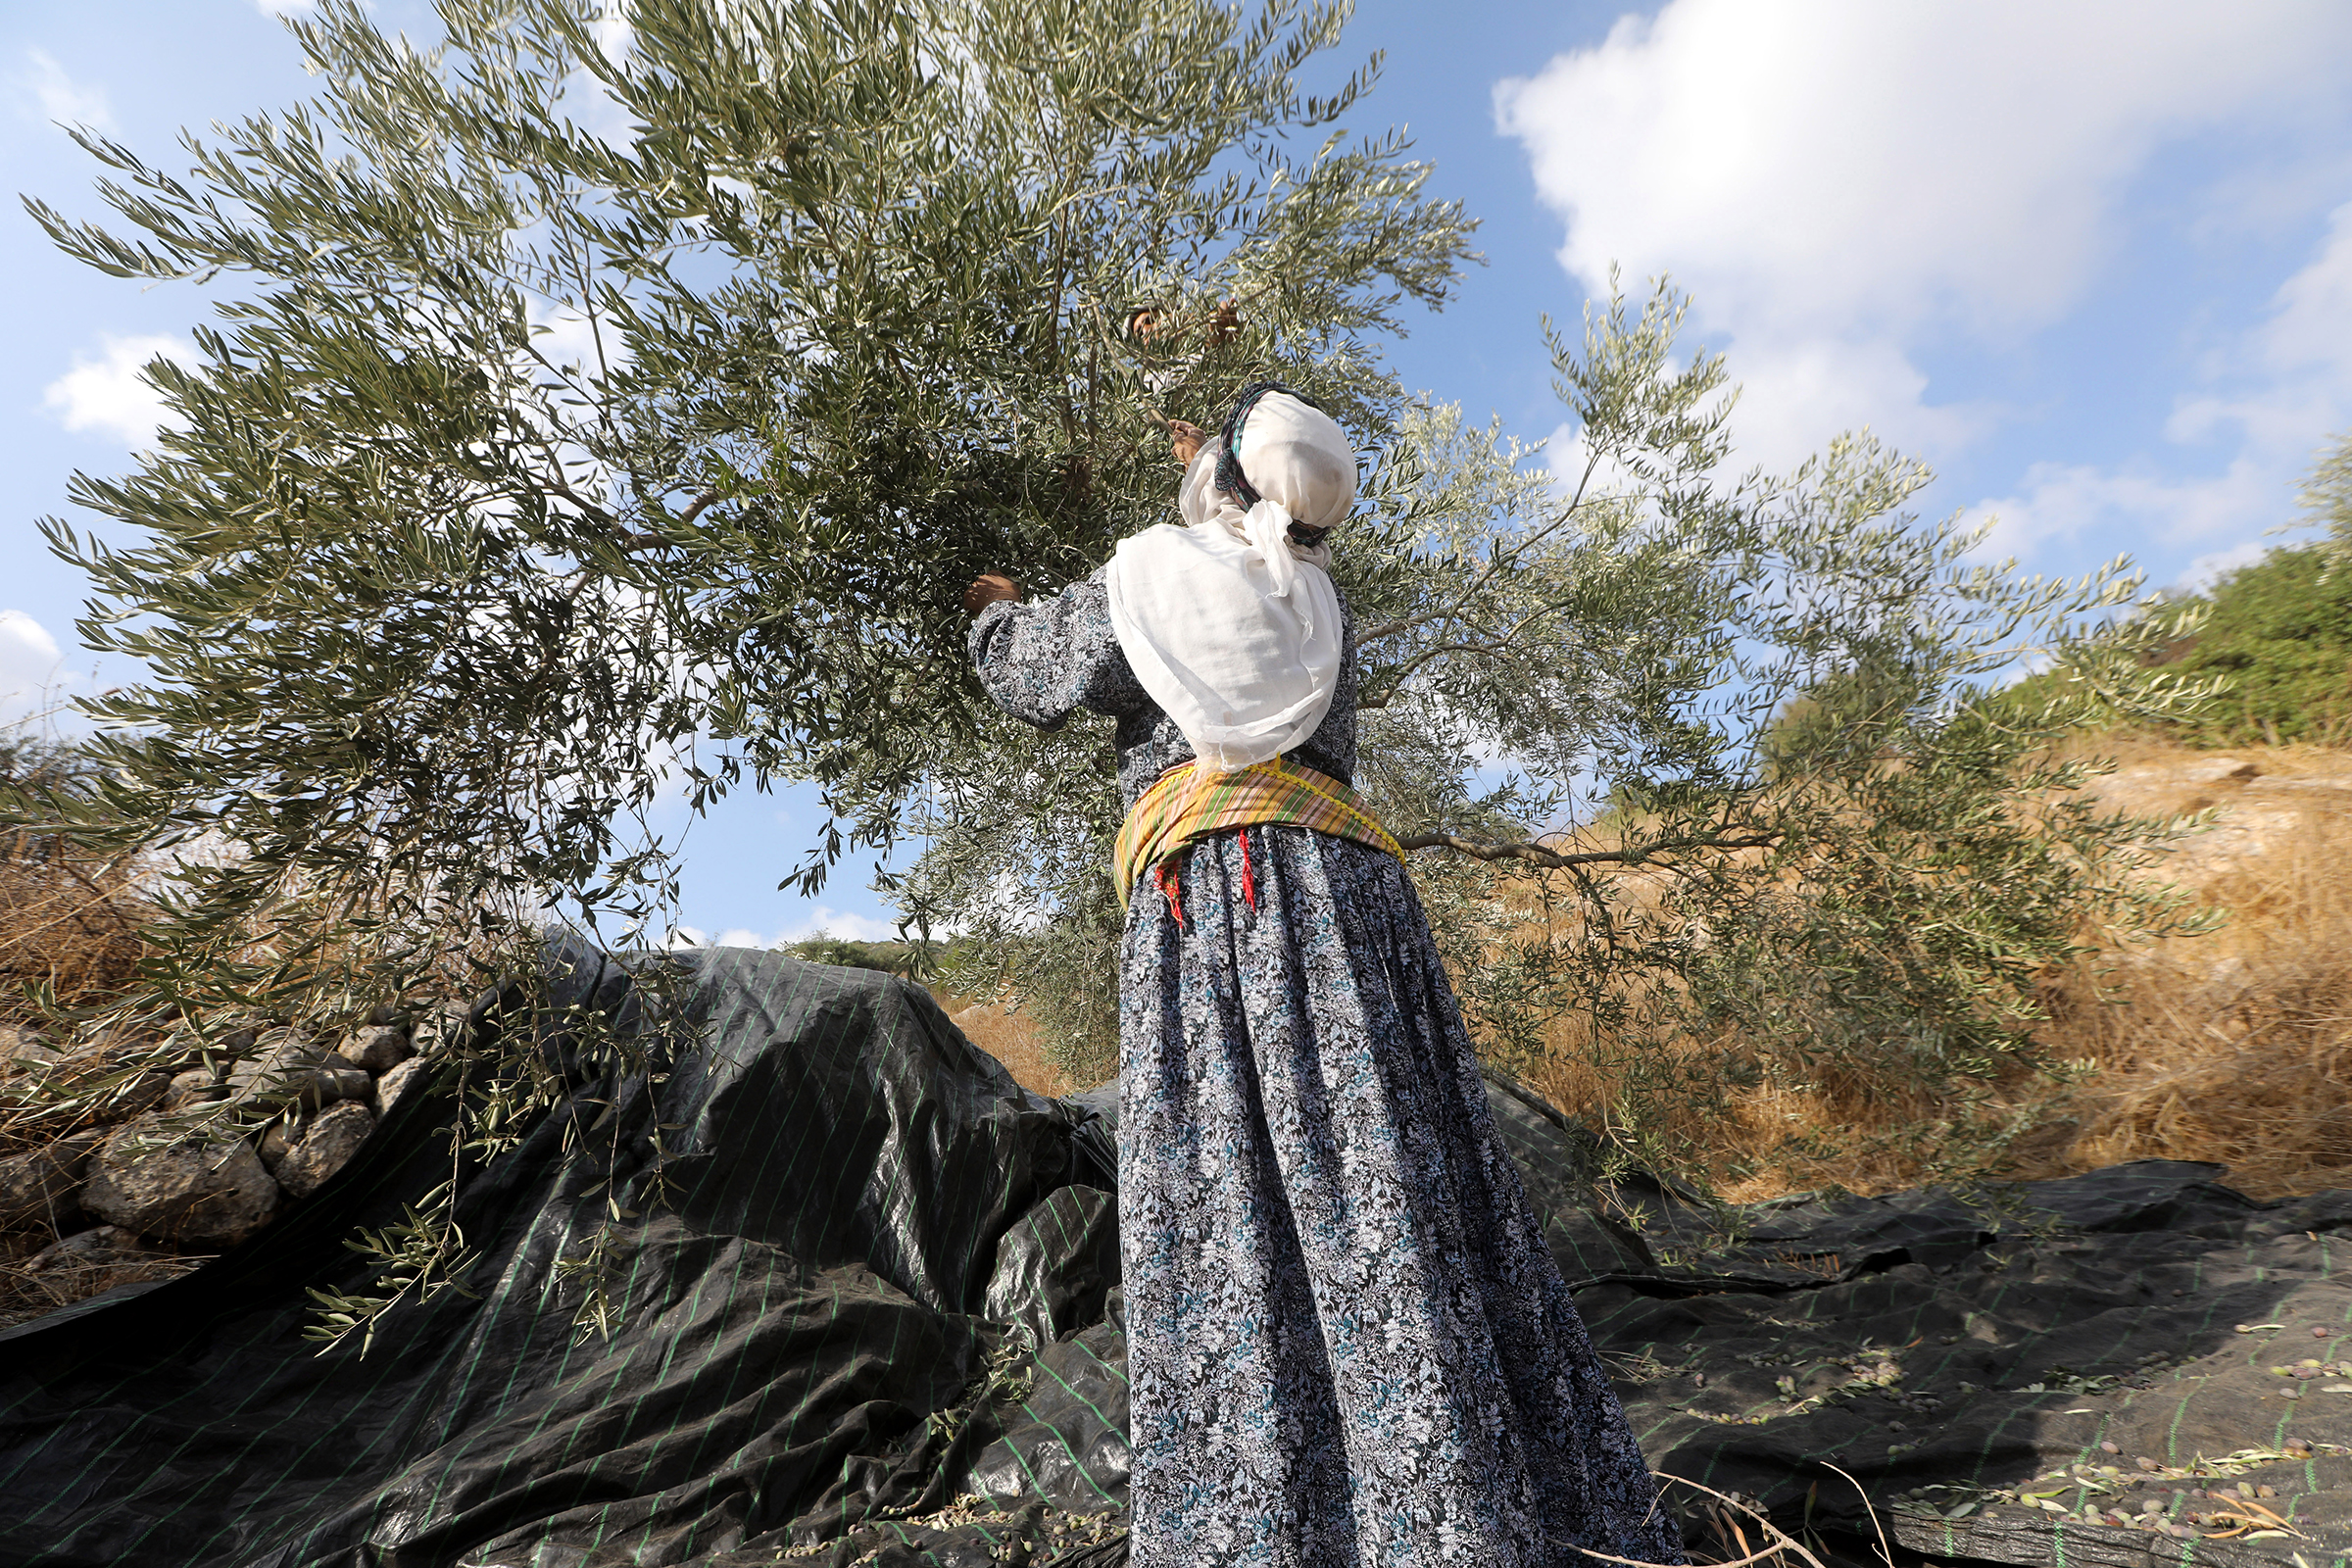 A Palestinian farmer collects olives in an olive grove on the outskirts of the West Bank village of Raba, near the city of Jenin, on Oct. 19, 2019.